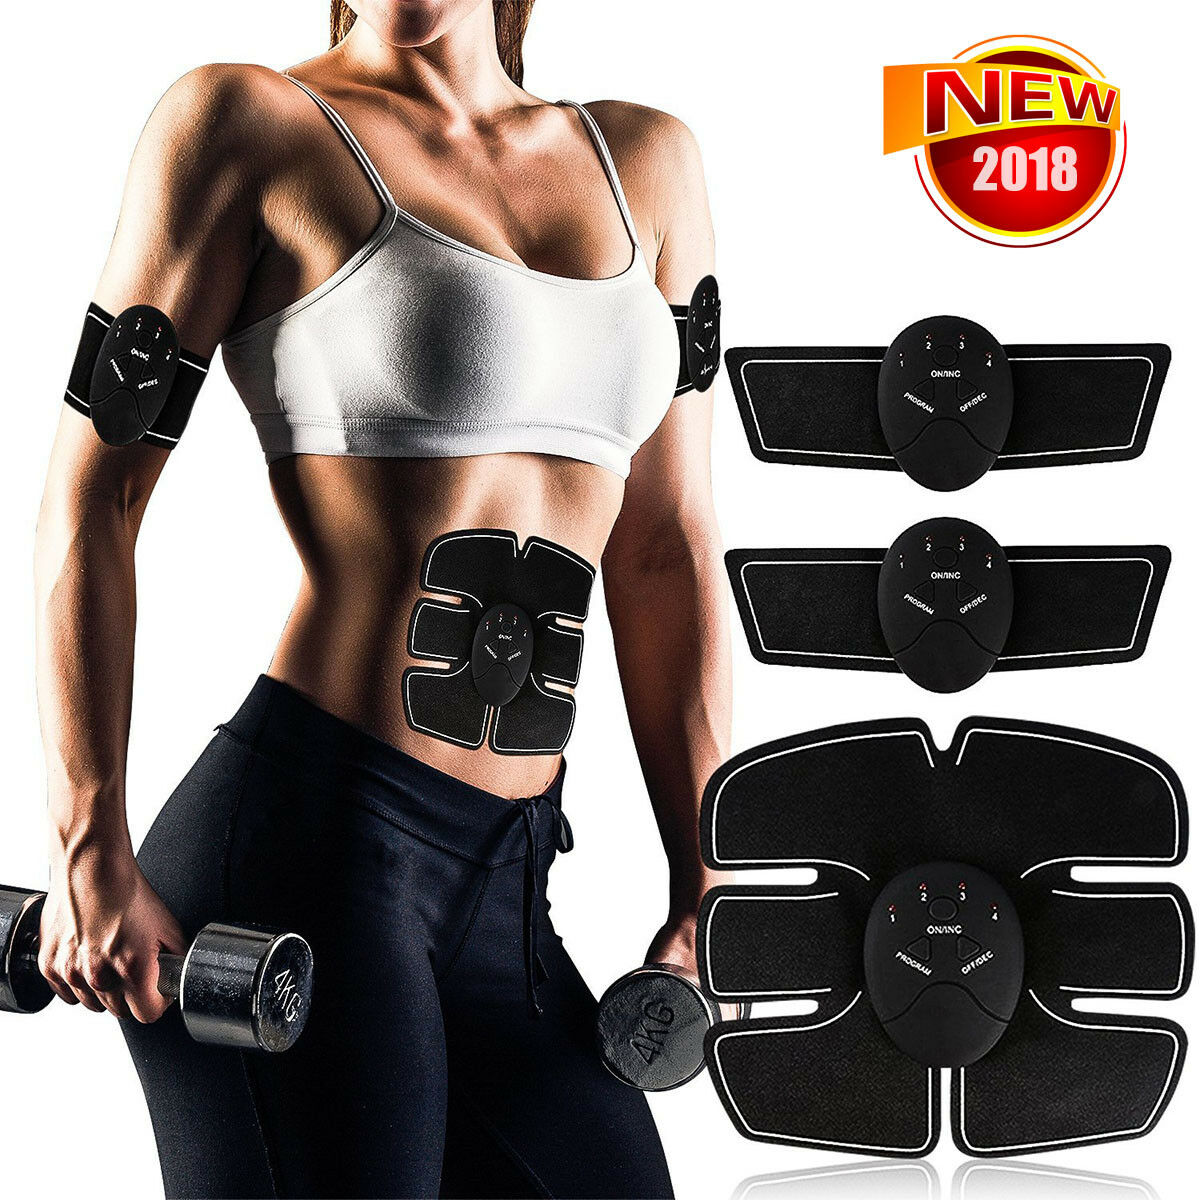 Magic EMS Muscle Training Gear ABS Training Fit Body Home Exercise Shape Fitness